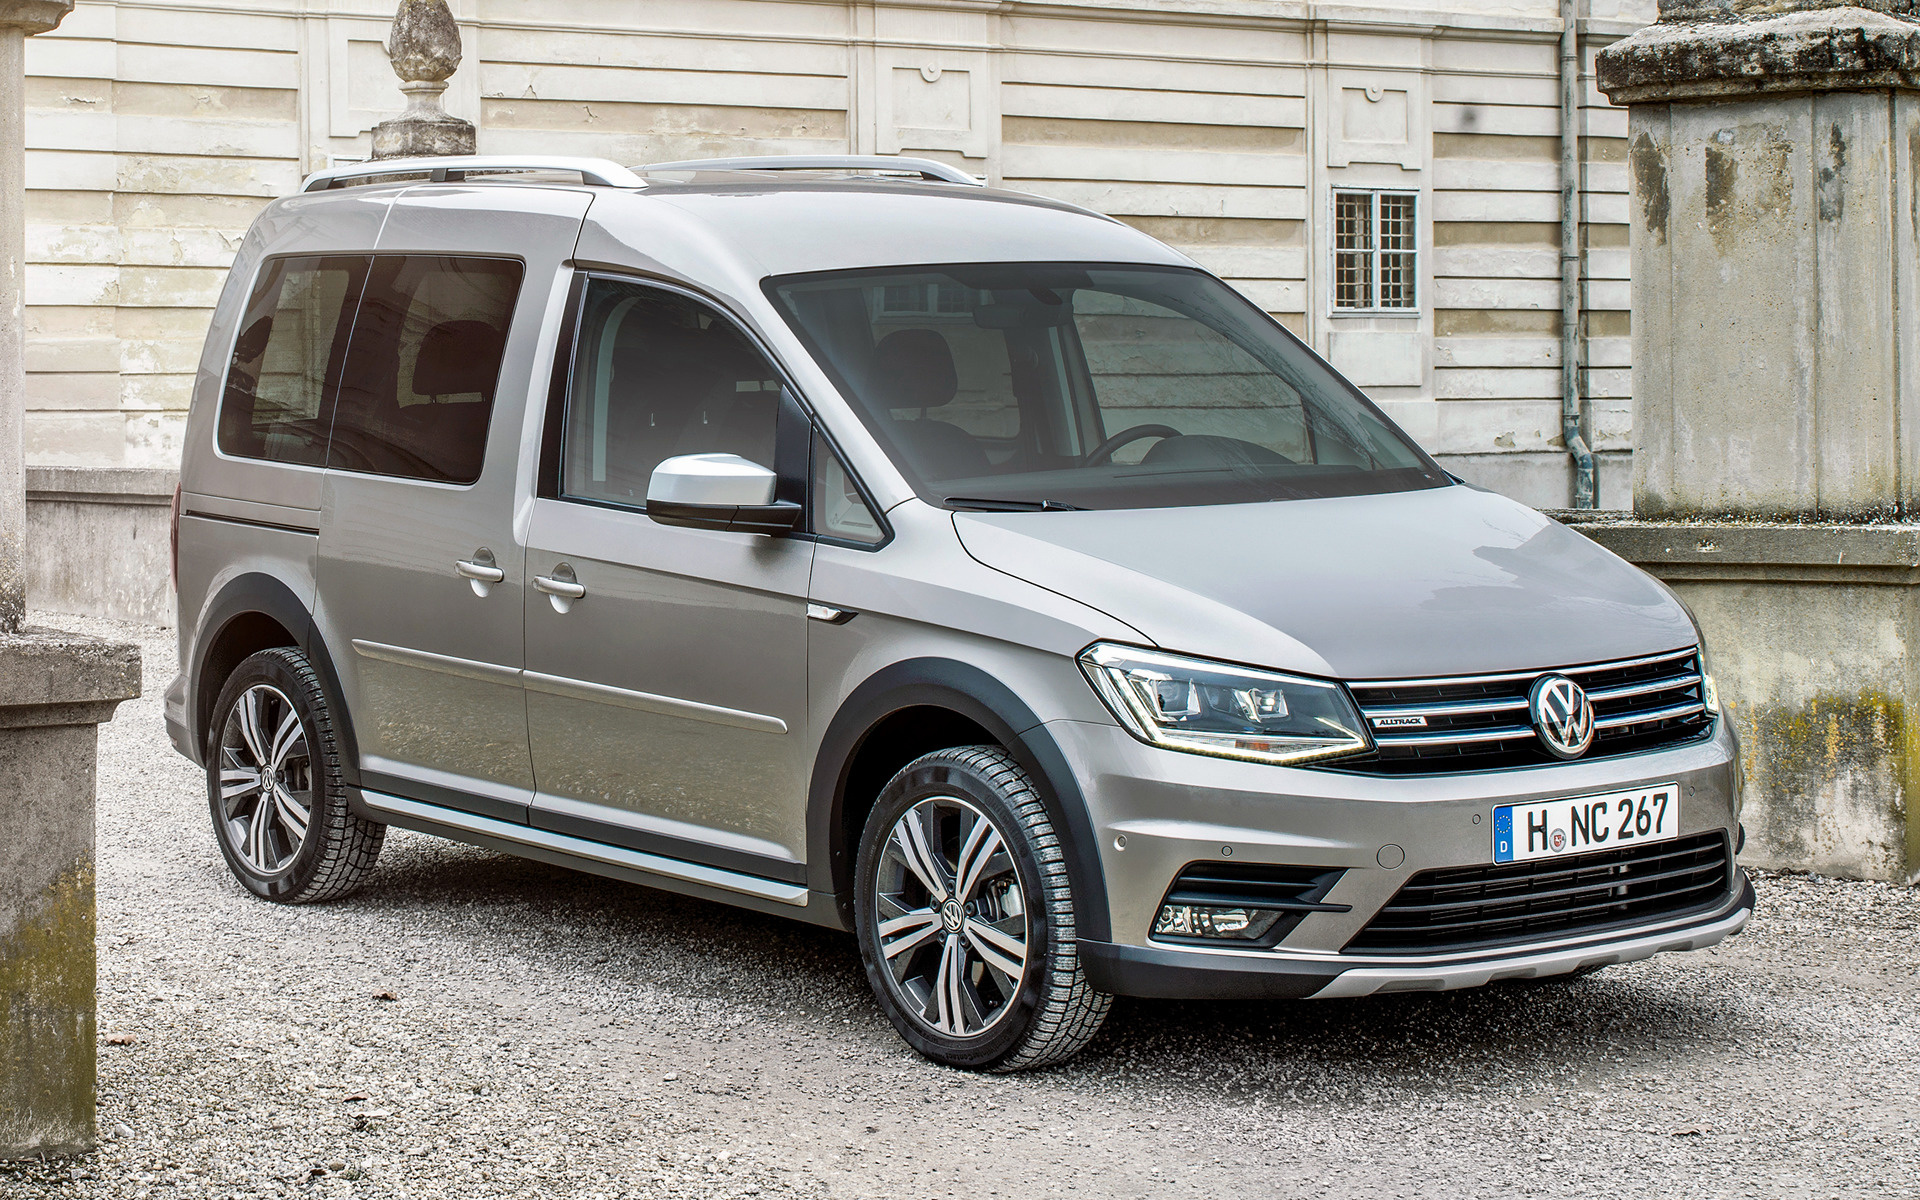 Genesis Car Wallpaper Volkswagen Caddy Alltrack 2015 Wallpapers And Hd Images